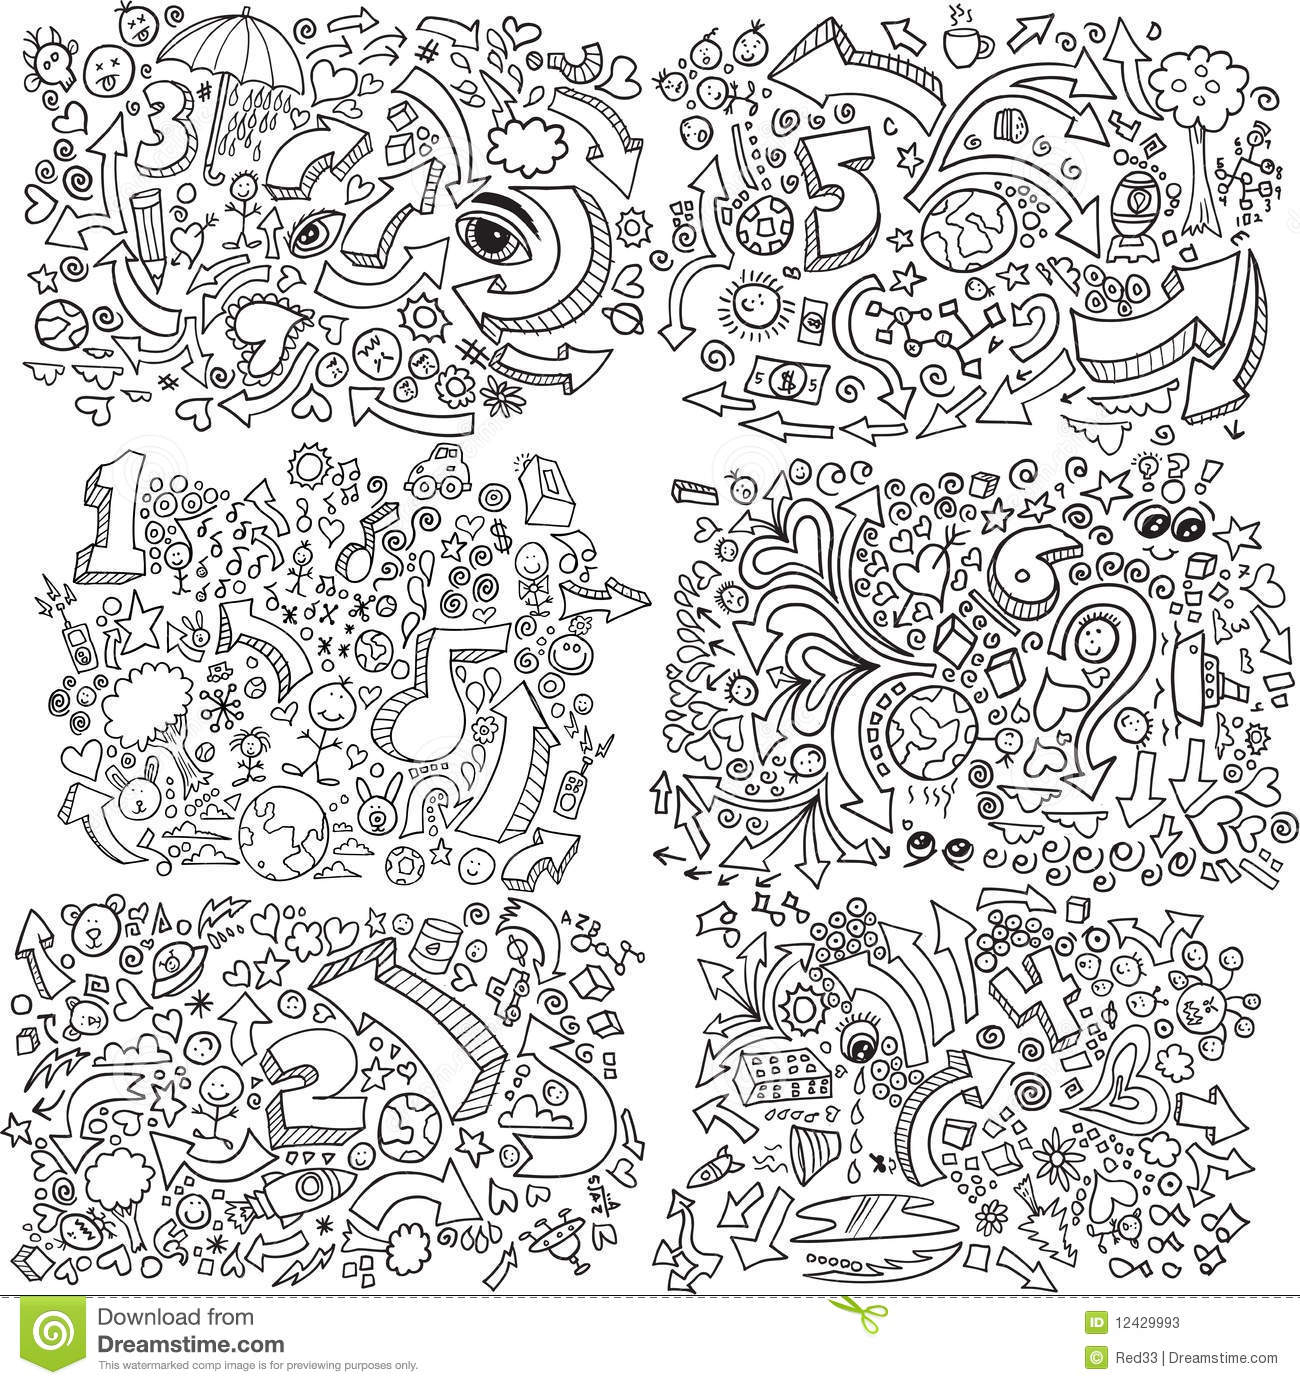 How To Ask Your Friend To Pay Back The Money They Owe Doodle Sketch Vector Set Stock Photos Image 12429993